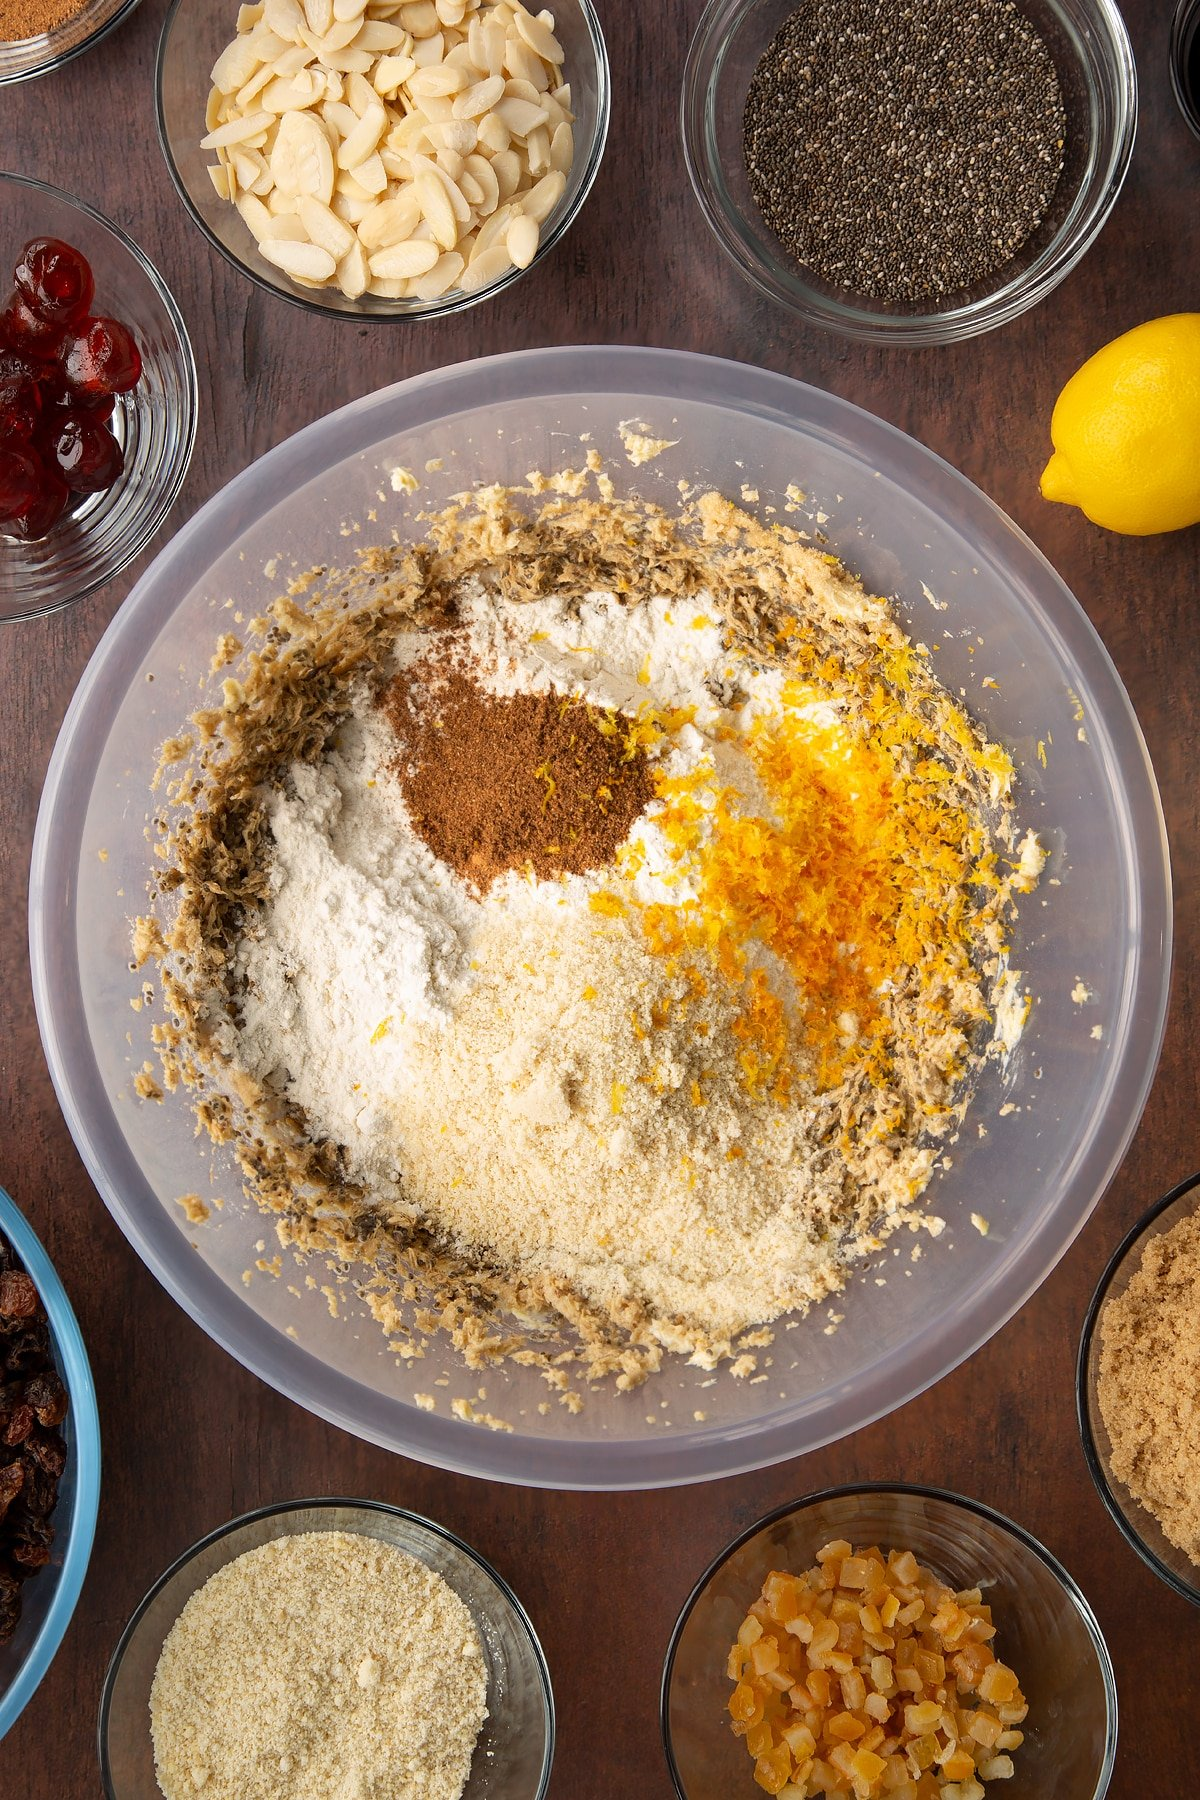 """Vegan butter, brown sugar, chia """"egg"""" and black treacle, whisked together in a large plastic bowl with Add the flour, ground almonds, mixed spice, nutmeg, orange zest and lemon zest on top. Ingredients to make vegan Christmas cake surround the bowl."""